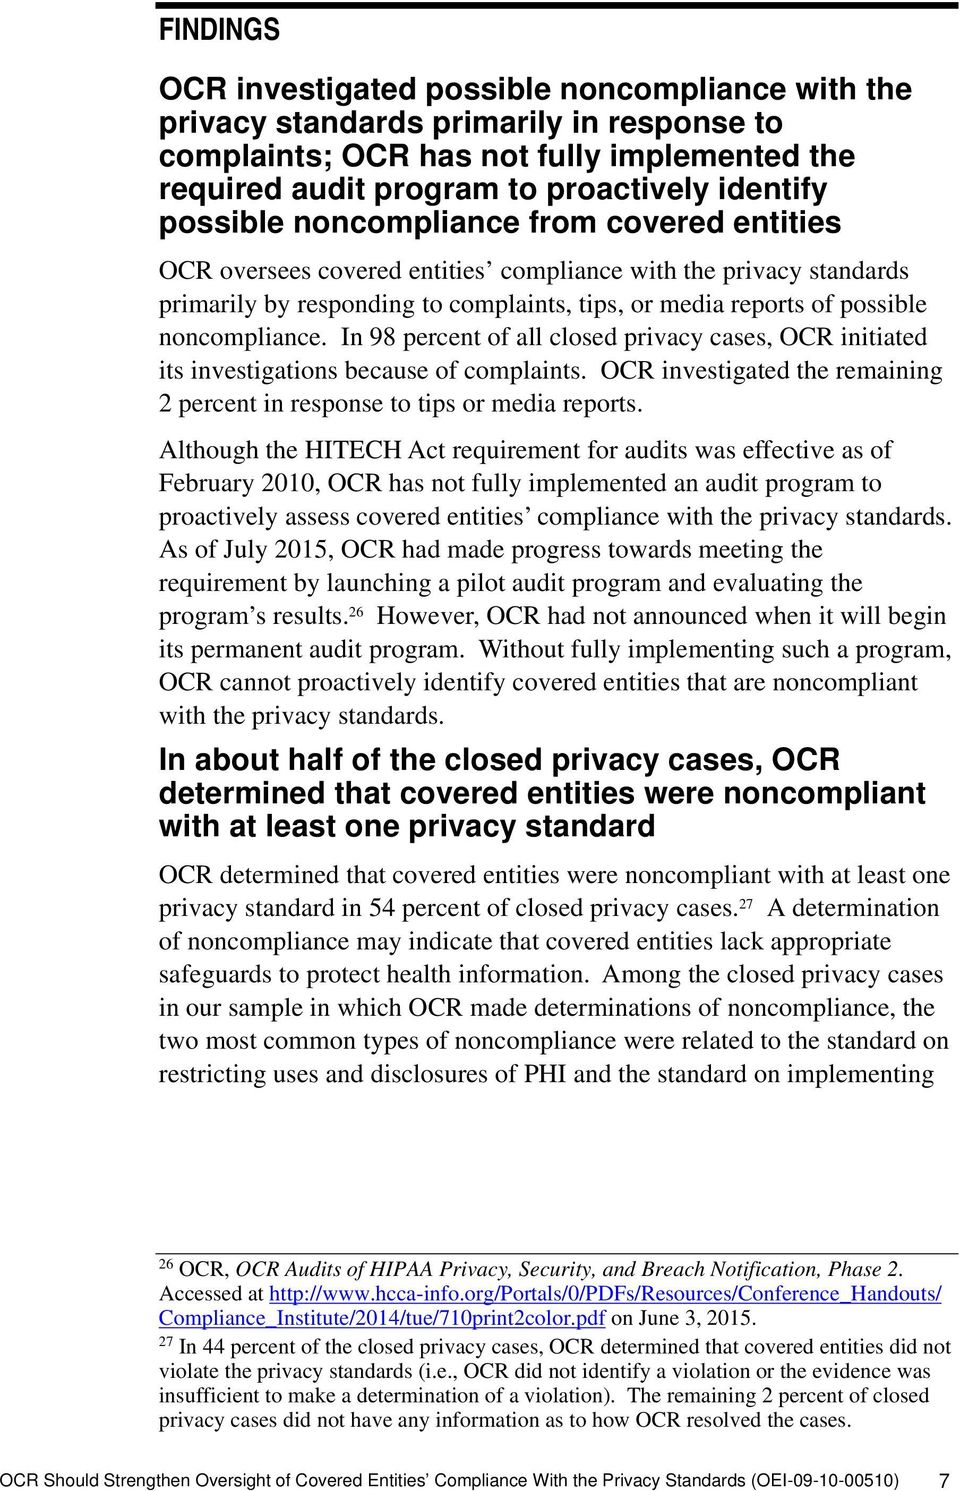 noncompliance. In 98 percent of all closed privacy cases, OCR initiated its investigations because of complaints. OCR investigated the remaining 2 percent in response to tips or media reports.